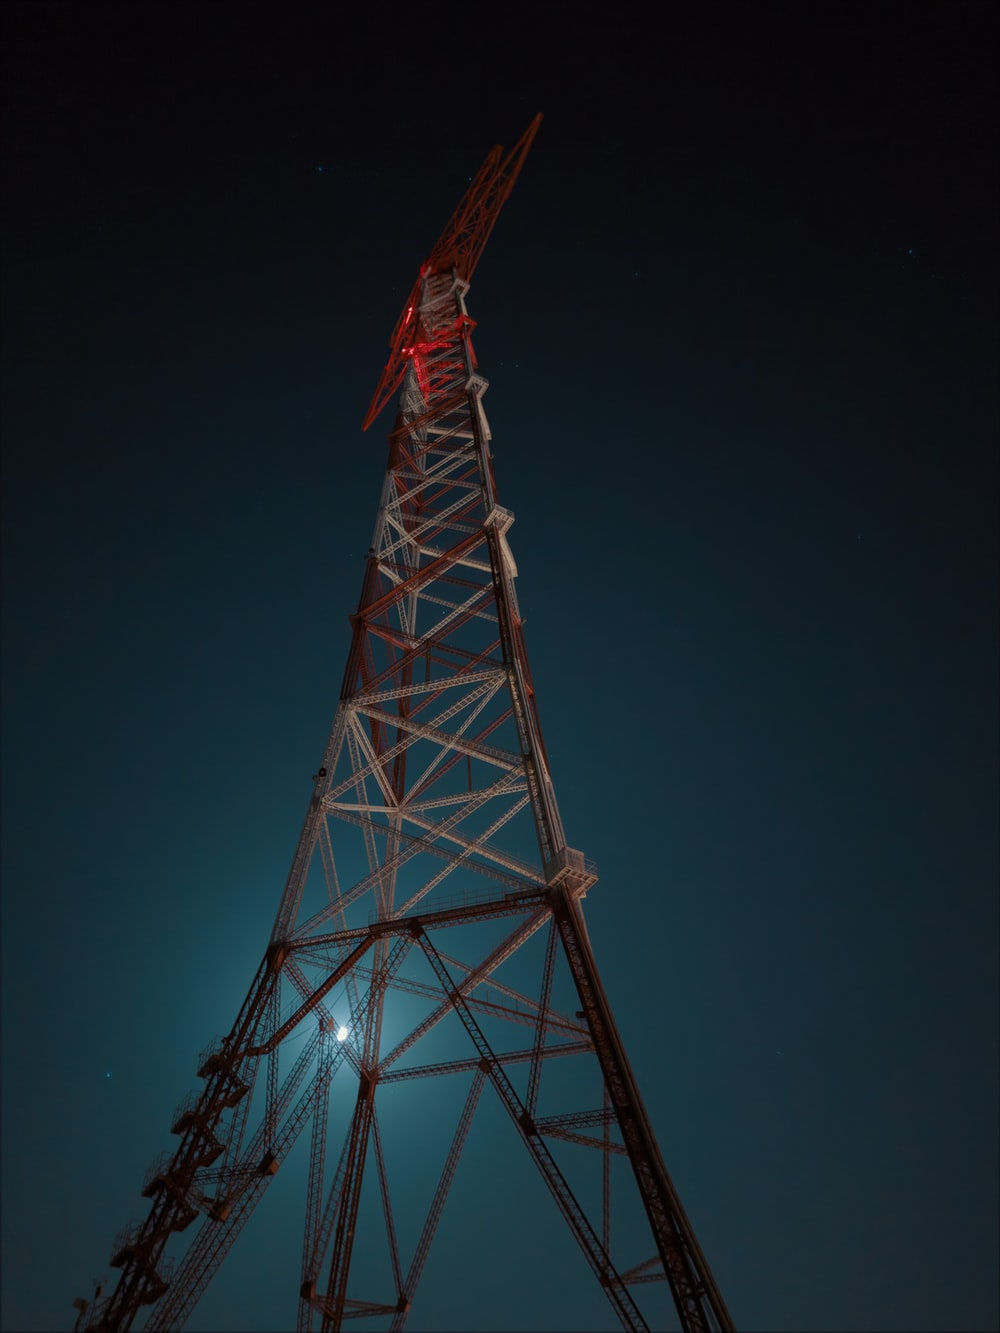 black and red metal tower